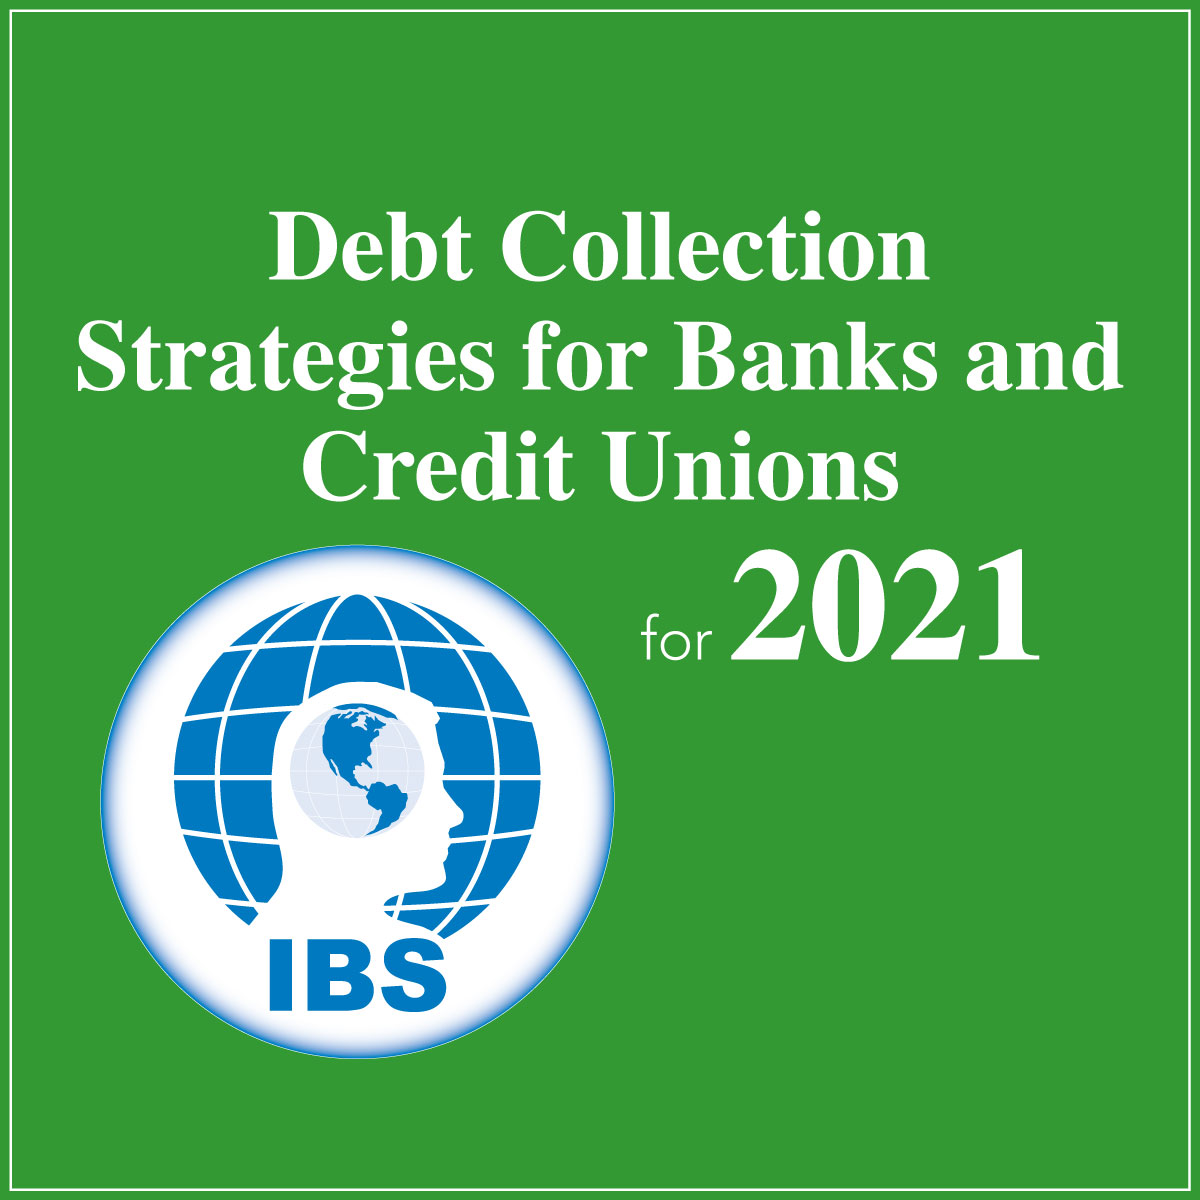 Debt Collection Strategies for Banks and Credit Unions Schema Image